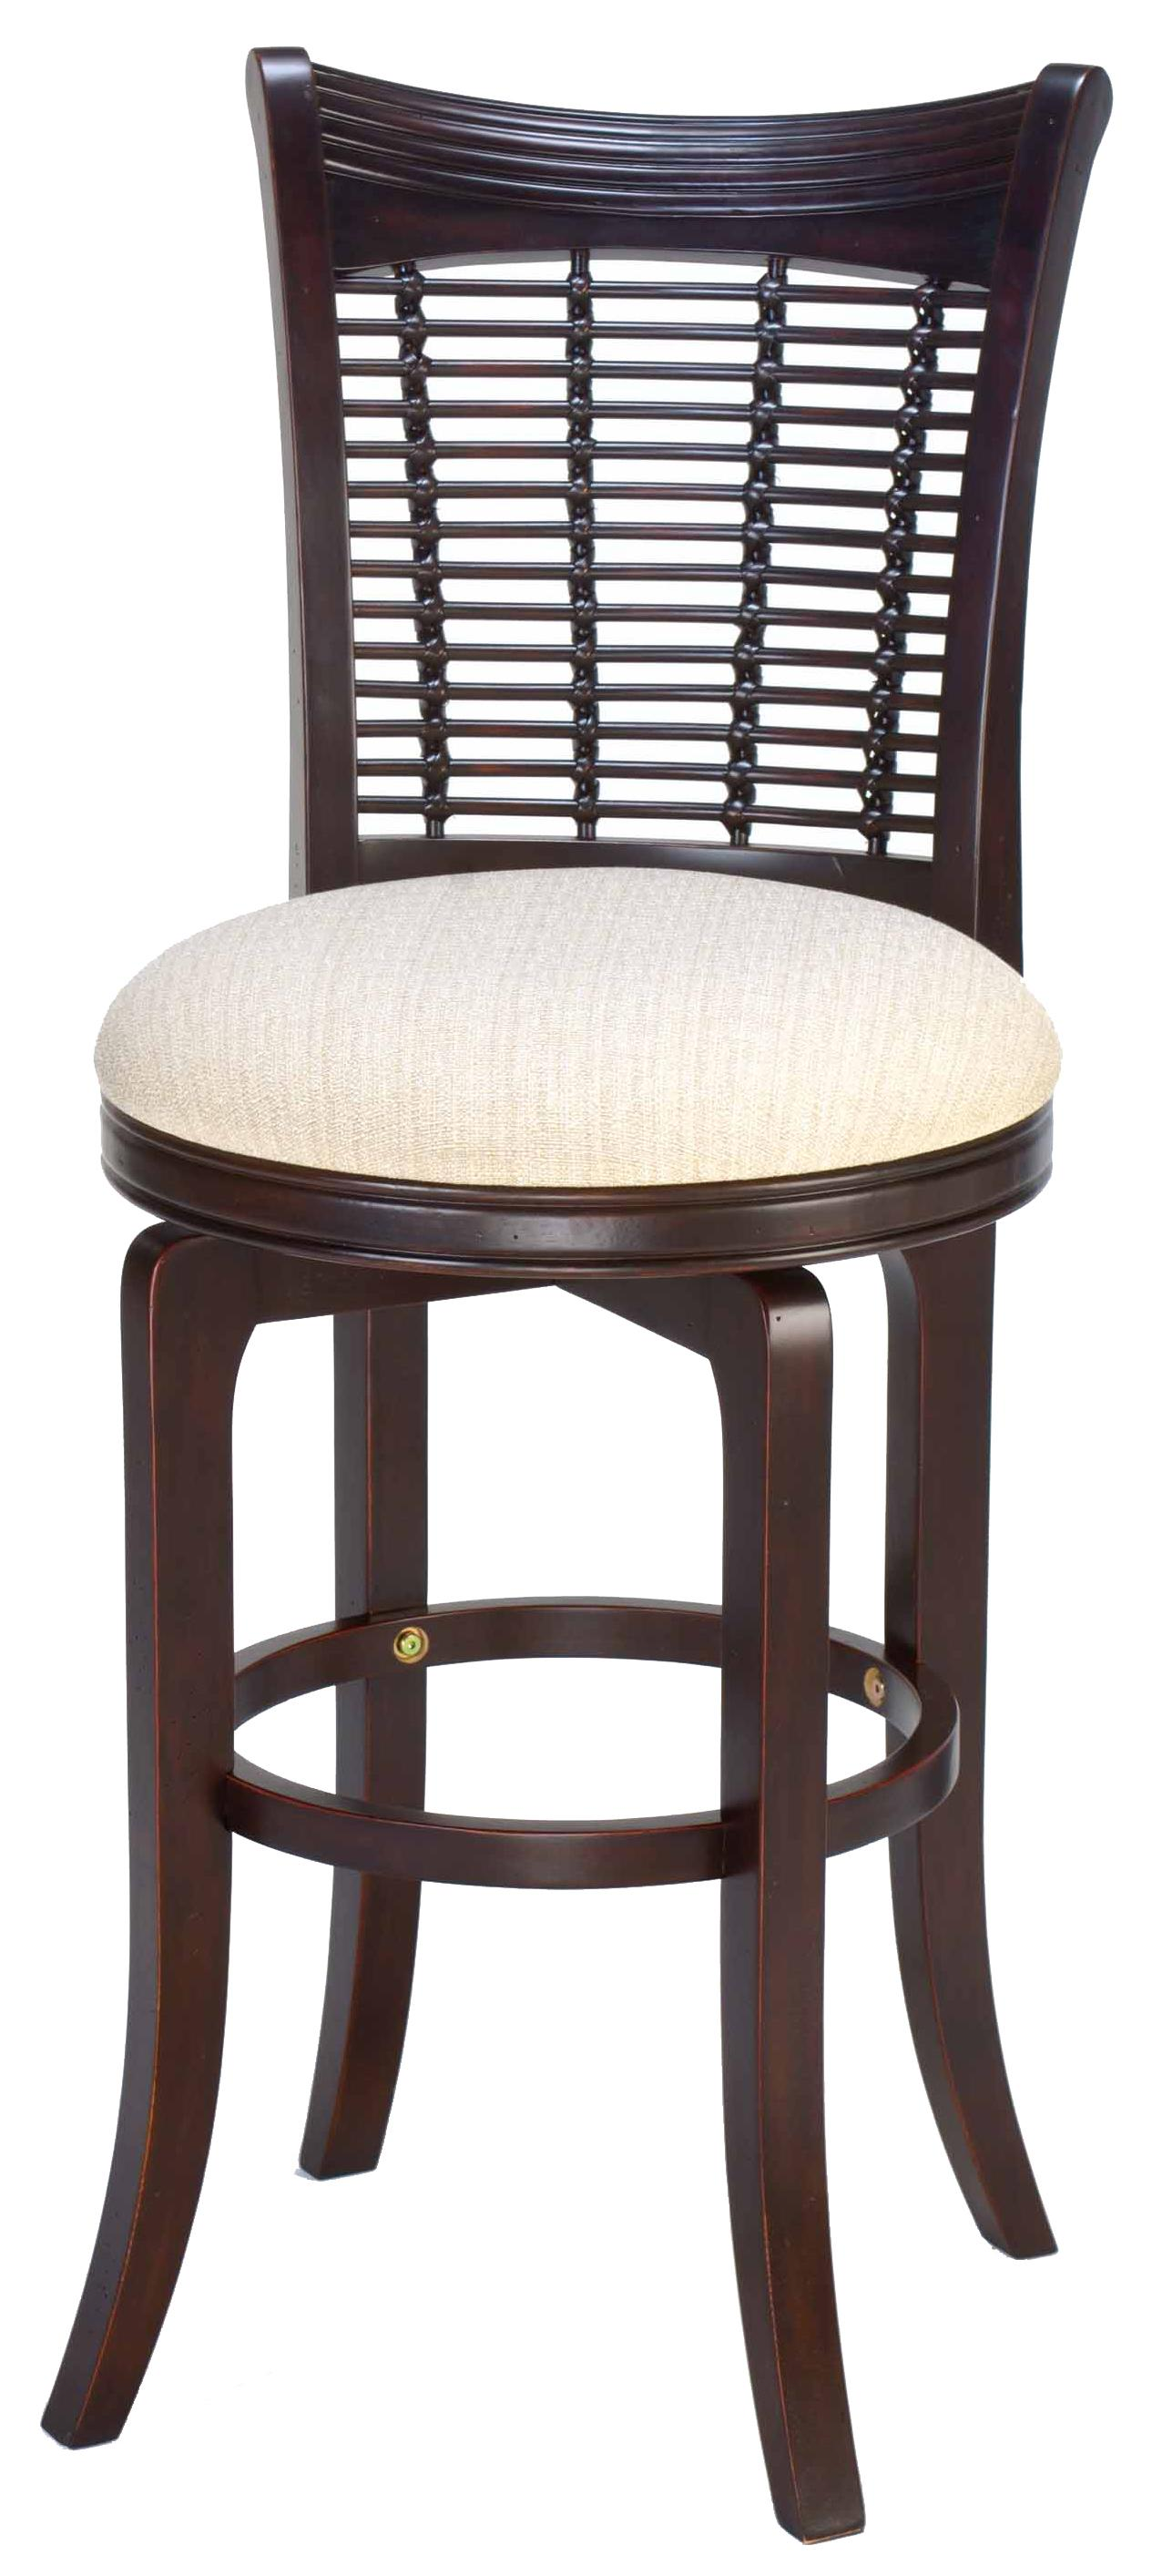 Marvelous photograph of Wood Stools 24 Counter Height Bayberry Wicker Swivel Stool with #7D6D4E color and 1265x2828 pixels